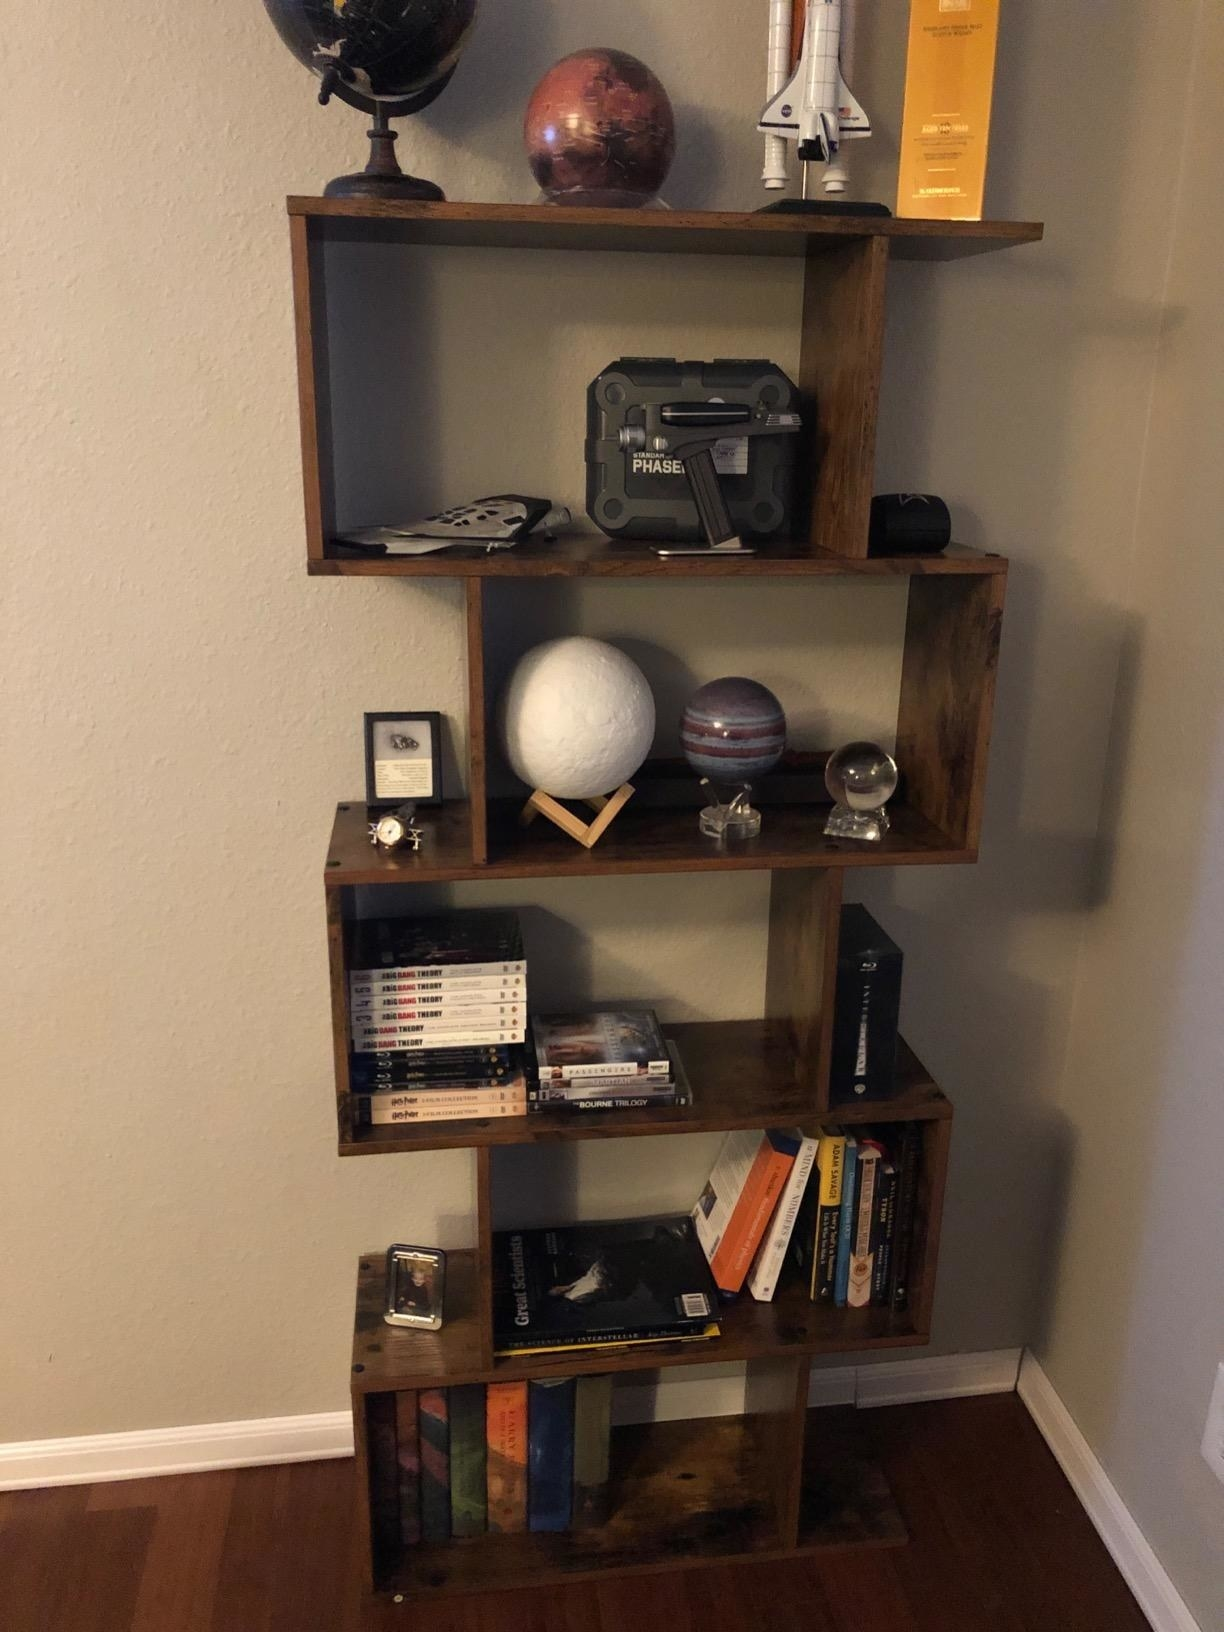 Squiggle shaped bookcase with 5 rectangular compartments in a reviewer's home